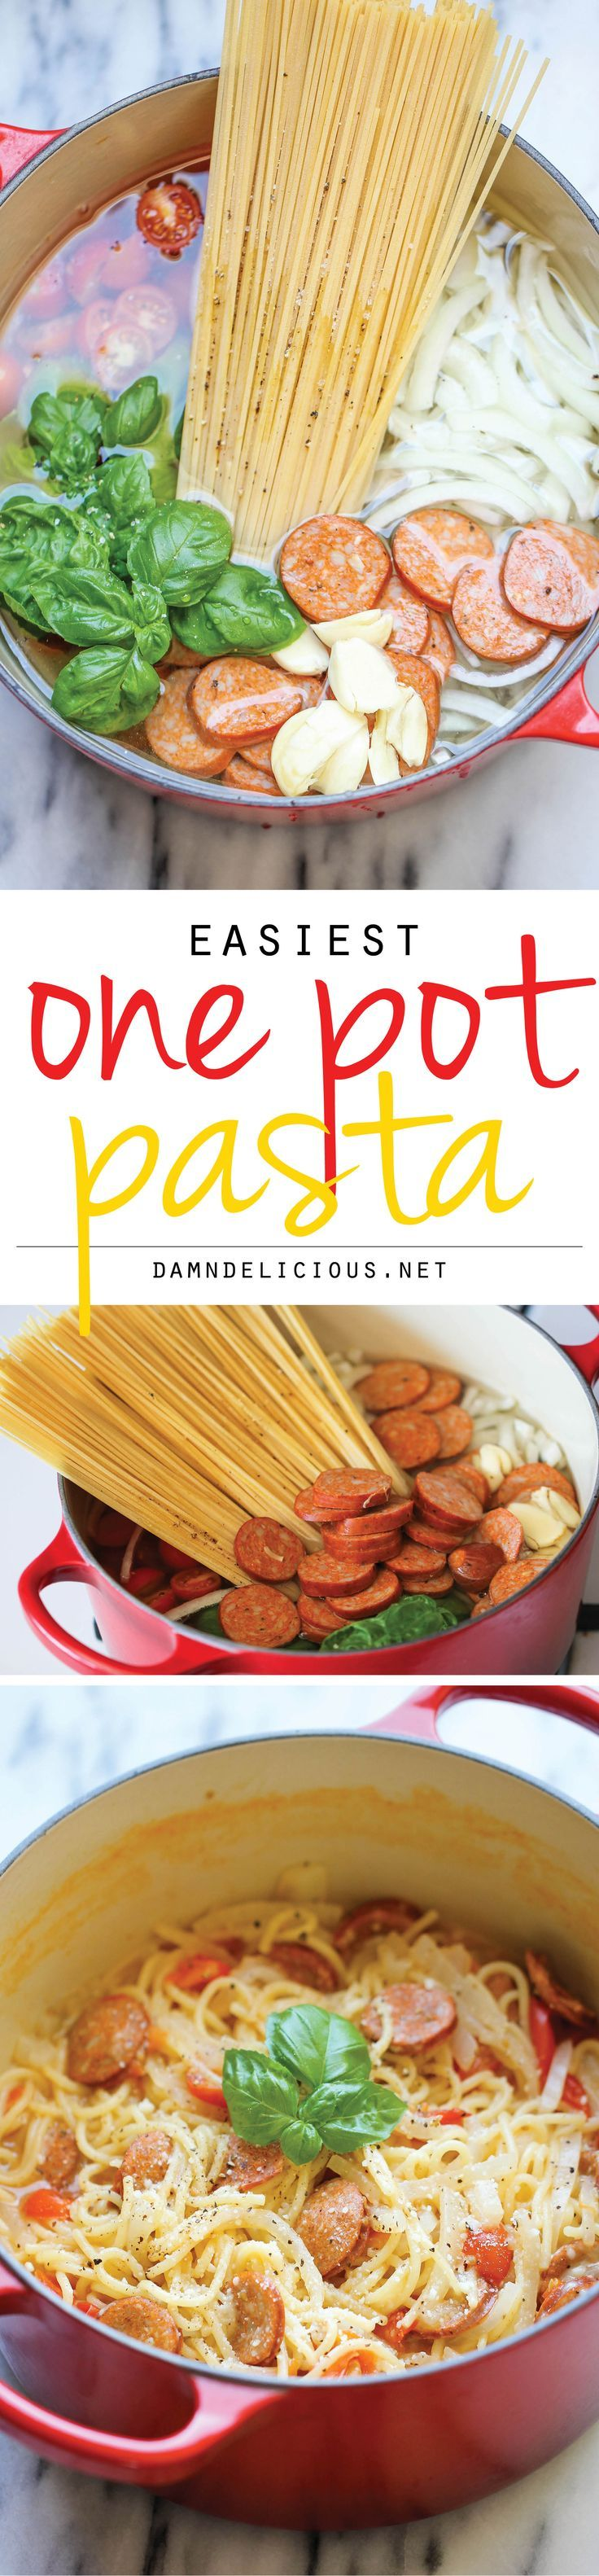 One Pot Pasta - The easiest, most amazing pasta you will ever make. Even the pasta gets cooked right in the pot. #quickandeasy #healthy #pastarecipes